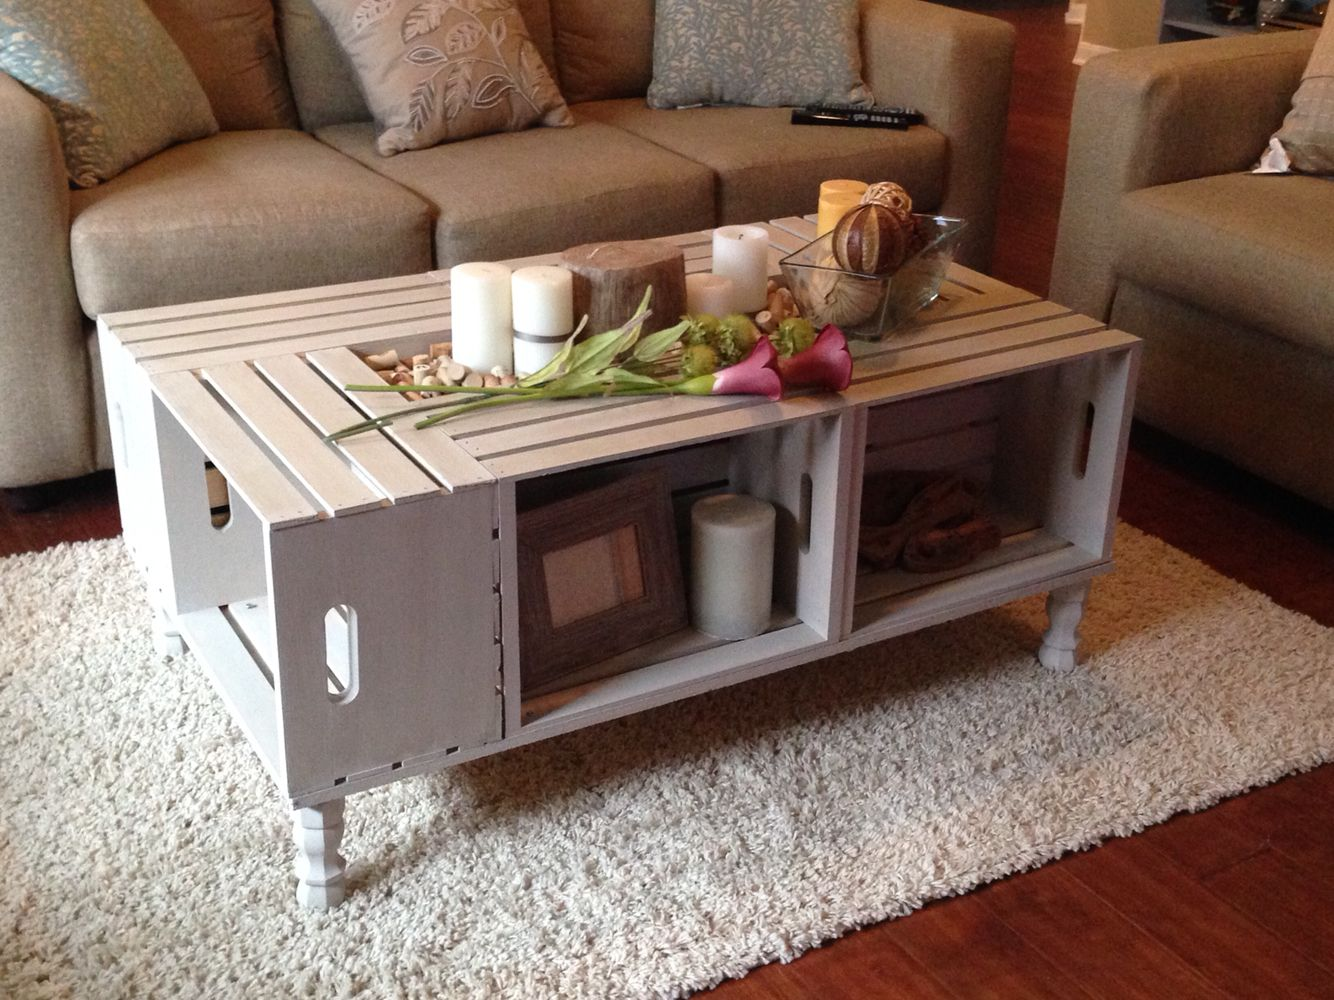 Wine crate coffee table dream home pinterest wine crate wine crate coffee table geotapseo Choice Image